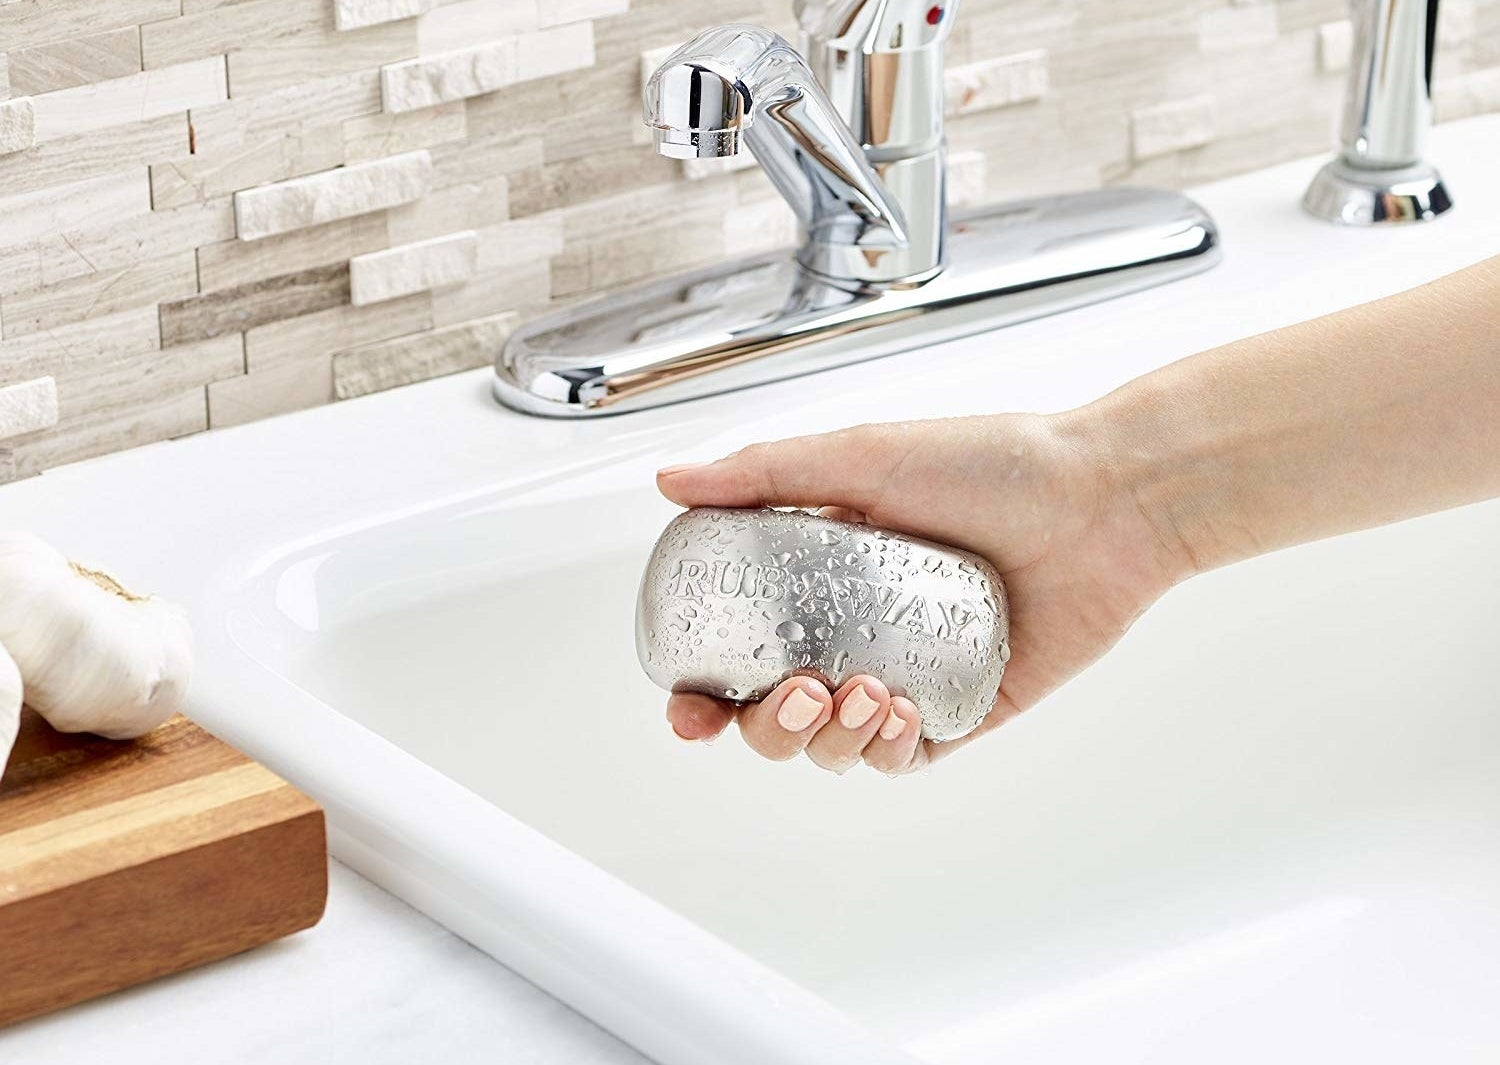 Hand holding the stainless steel in the shape of a bar of soap